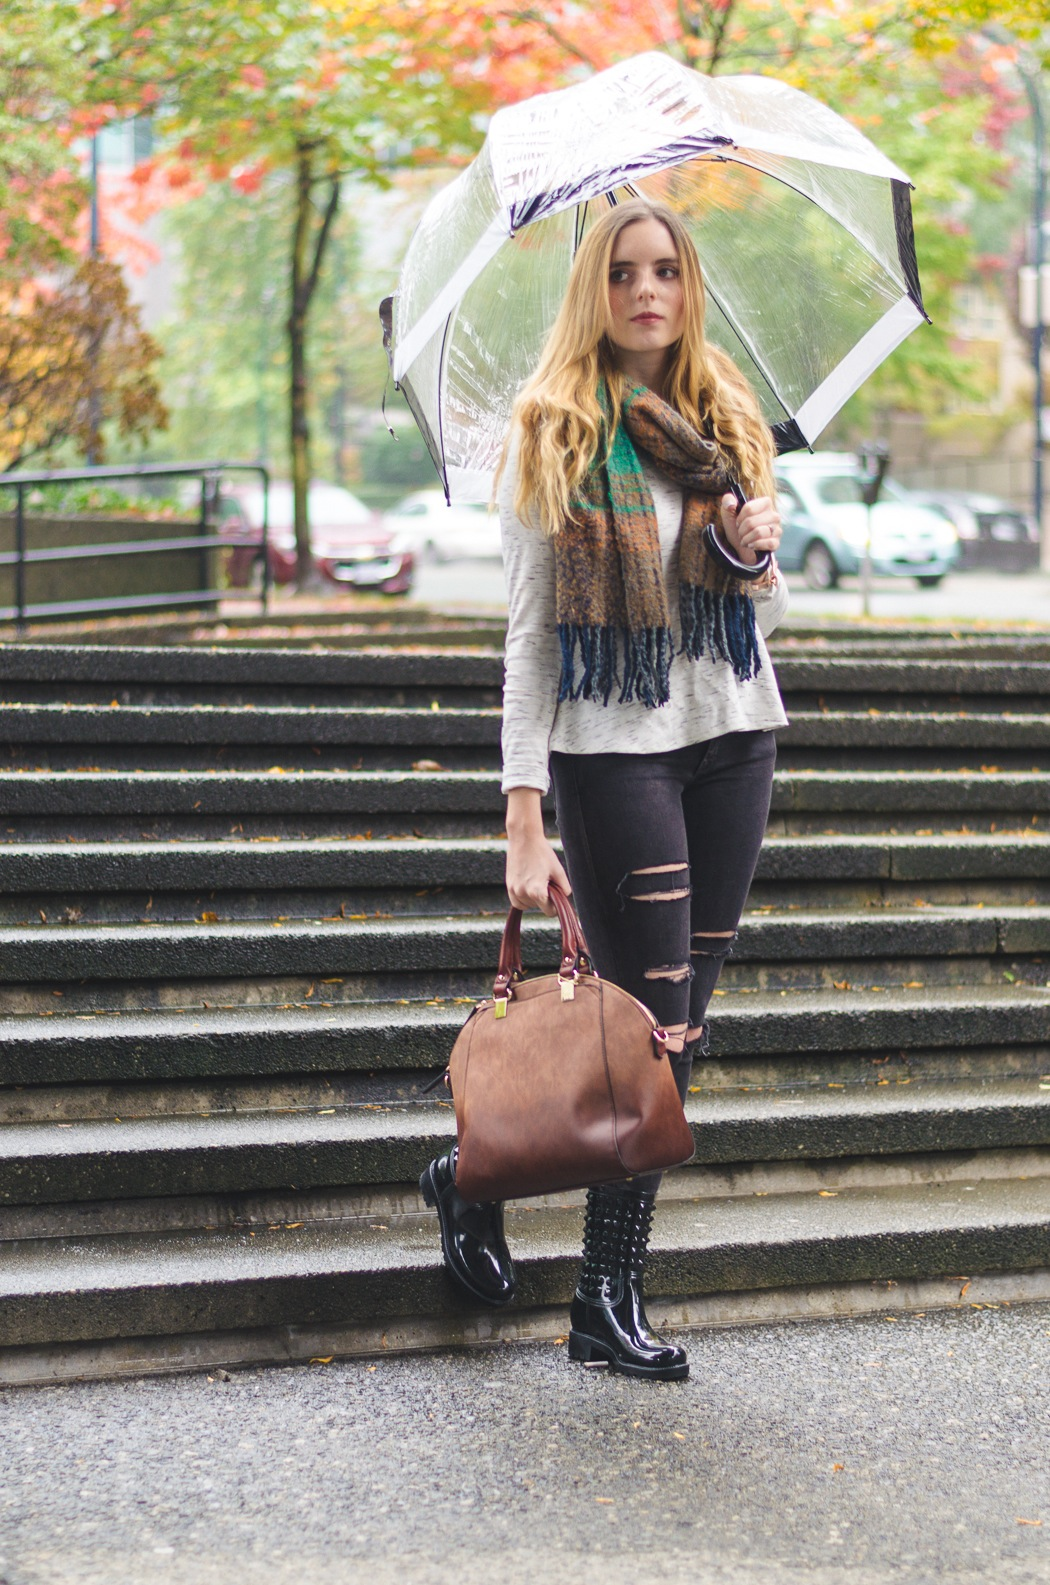 the urban umbrella style blog, vancouver style blog, vancouver style blogger, vancouver fashion blog, vancouver lifestyle blog, vancouver health blog, vancouver fitness blog, vancouver travel blog, canadian fashion blog, canadian style blog, canadian lifestyle blog, canadian health blog, canadian fitness blog, canadian travel blog, bree aylwin, how to look stylish in the rain, tips to dressing stylishly on a rainy day, american eagle distressed jeans, dynamite clothing peplum top, pinkstix blanket scarf, pinkstix handbag, best affordable handbag, gilded arrow boutique necklace, best fitness blogs, best health blogs, best travel blogs, top fashion blogs, top style blogs, top lifestyle blogs, top fitness blogs, top health blogs, top travel blogs